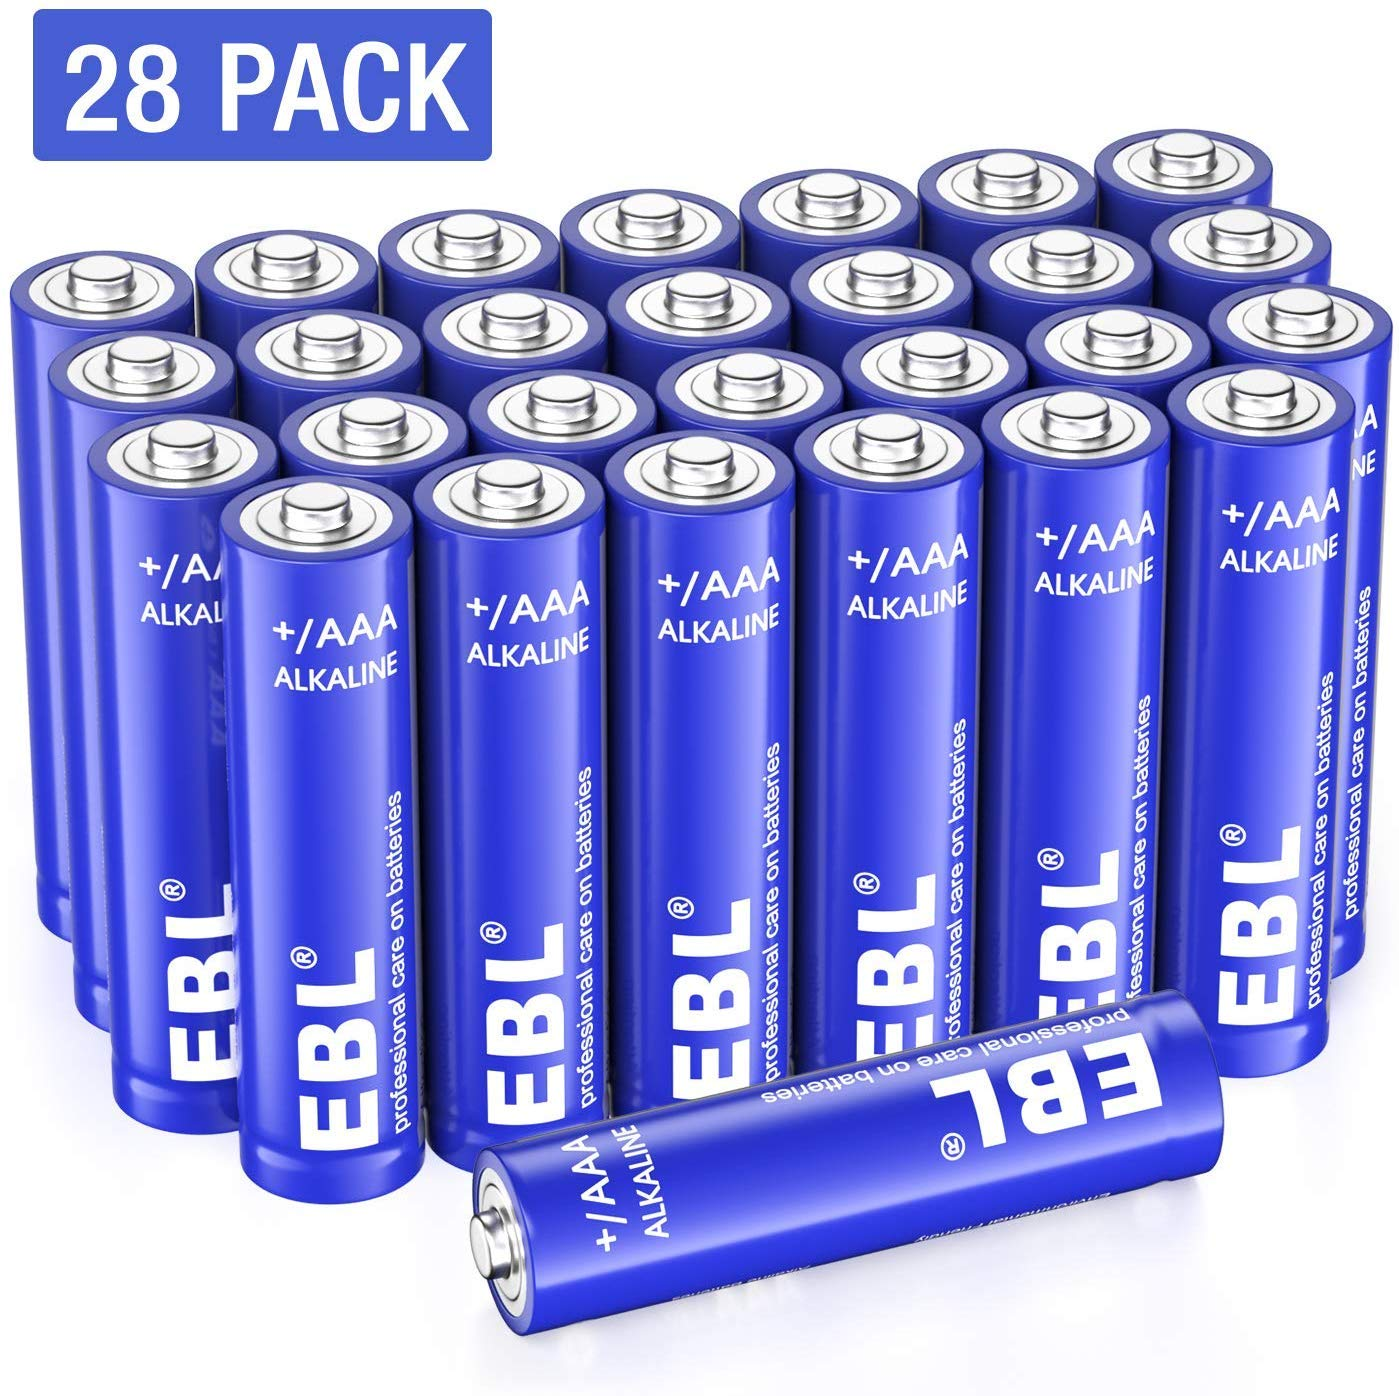 Batteries are always needed these are great